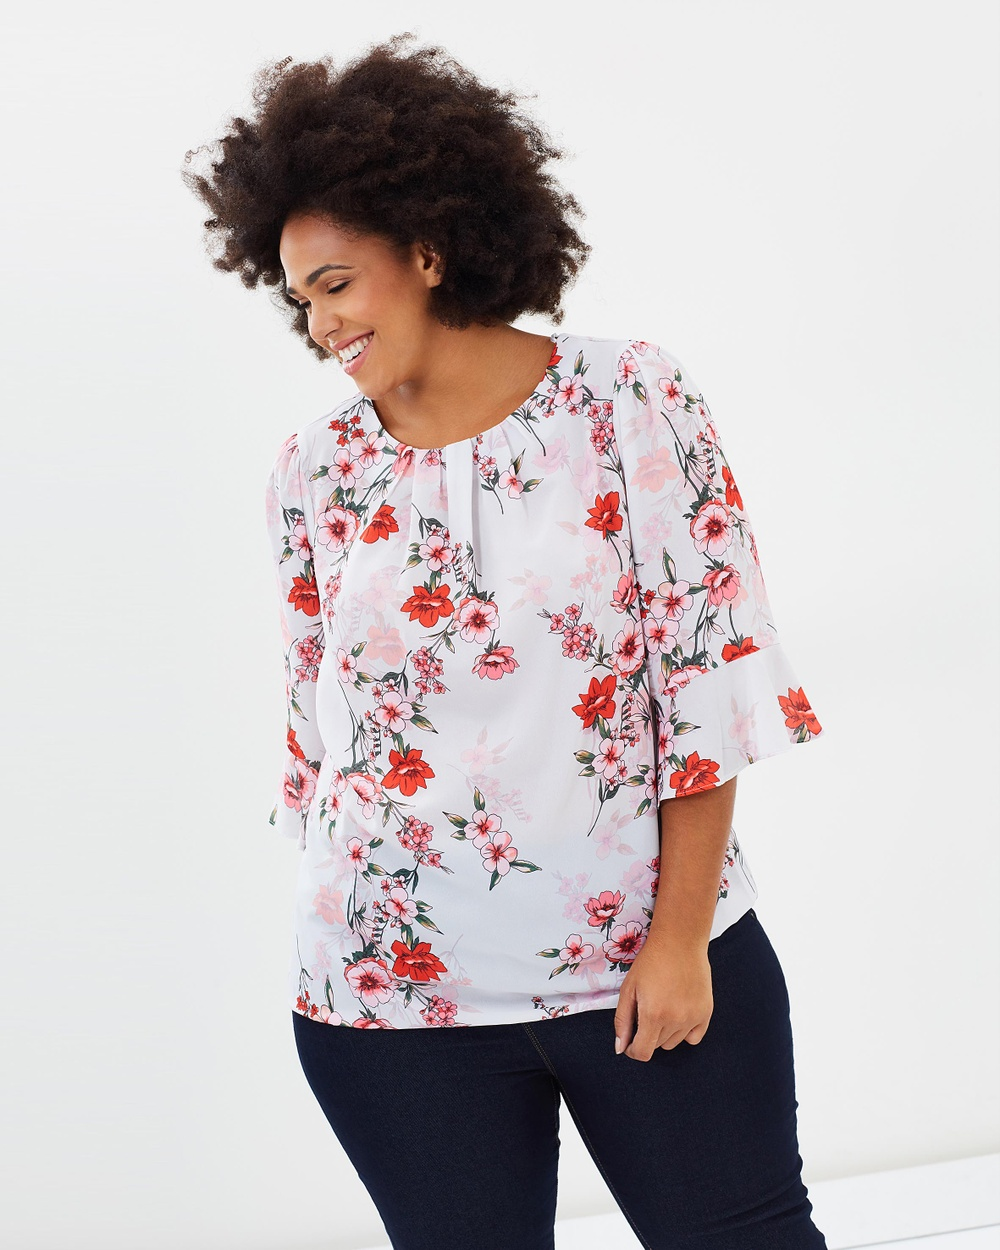 DP Curve Shadow Floral Top Tops White Shadow Floral Top